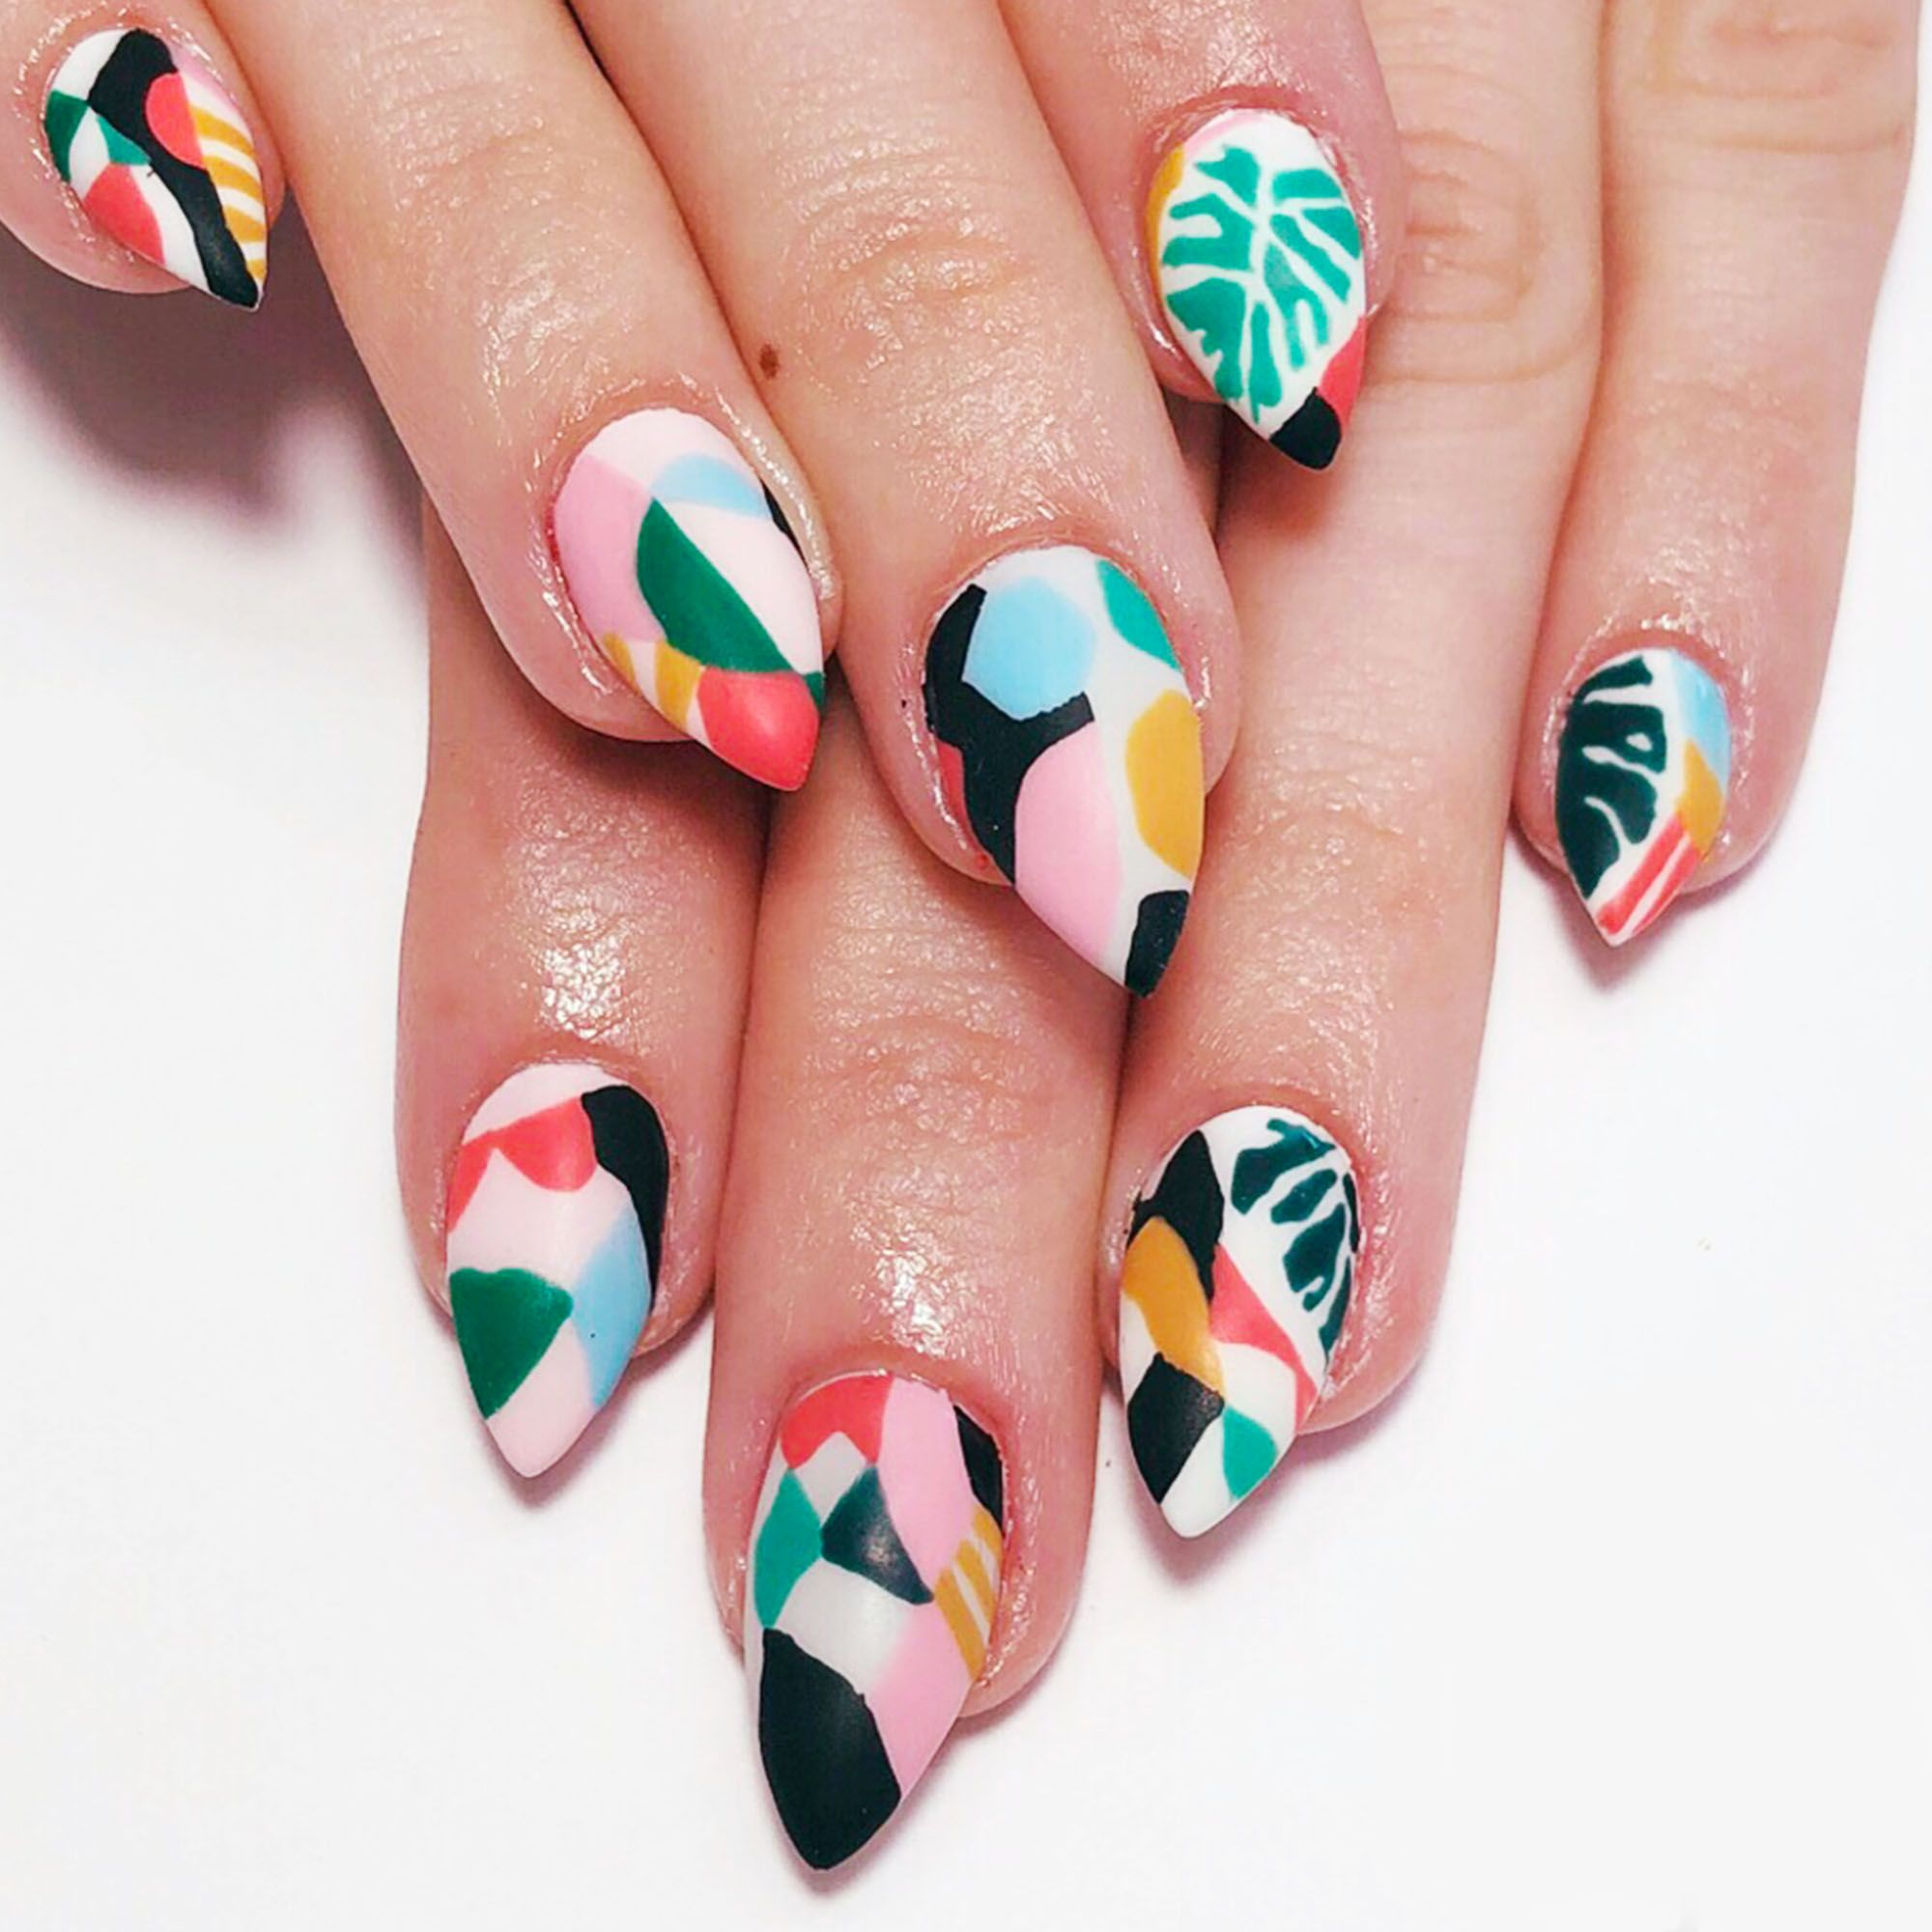 20 Best Summer Nail Art Designs That Are Easy To Design: 20 Cool Summer Nail Art Designs